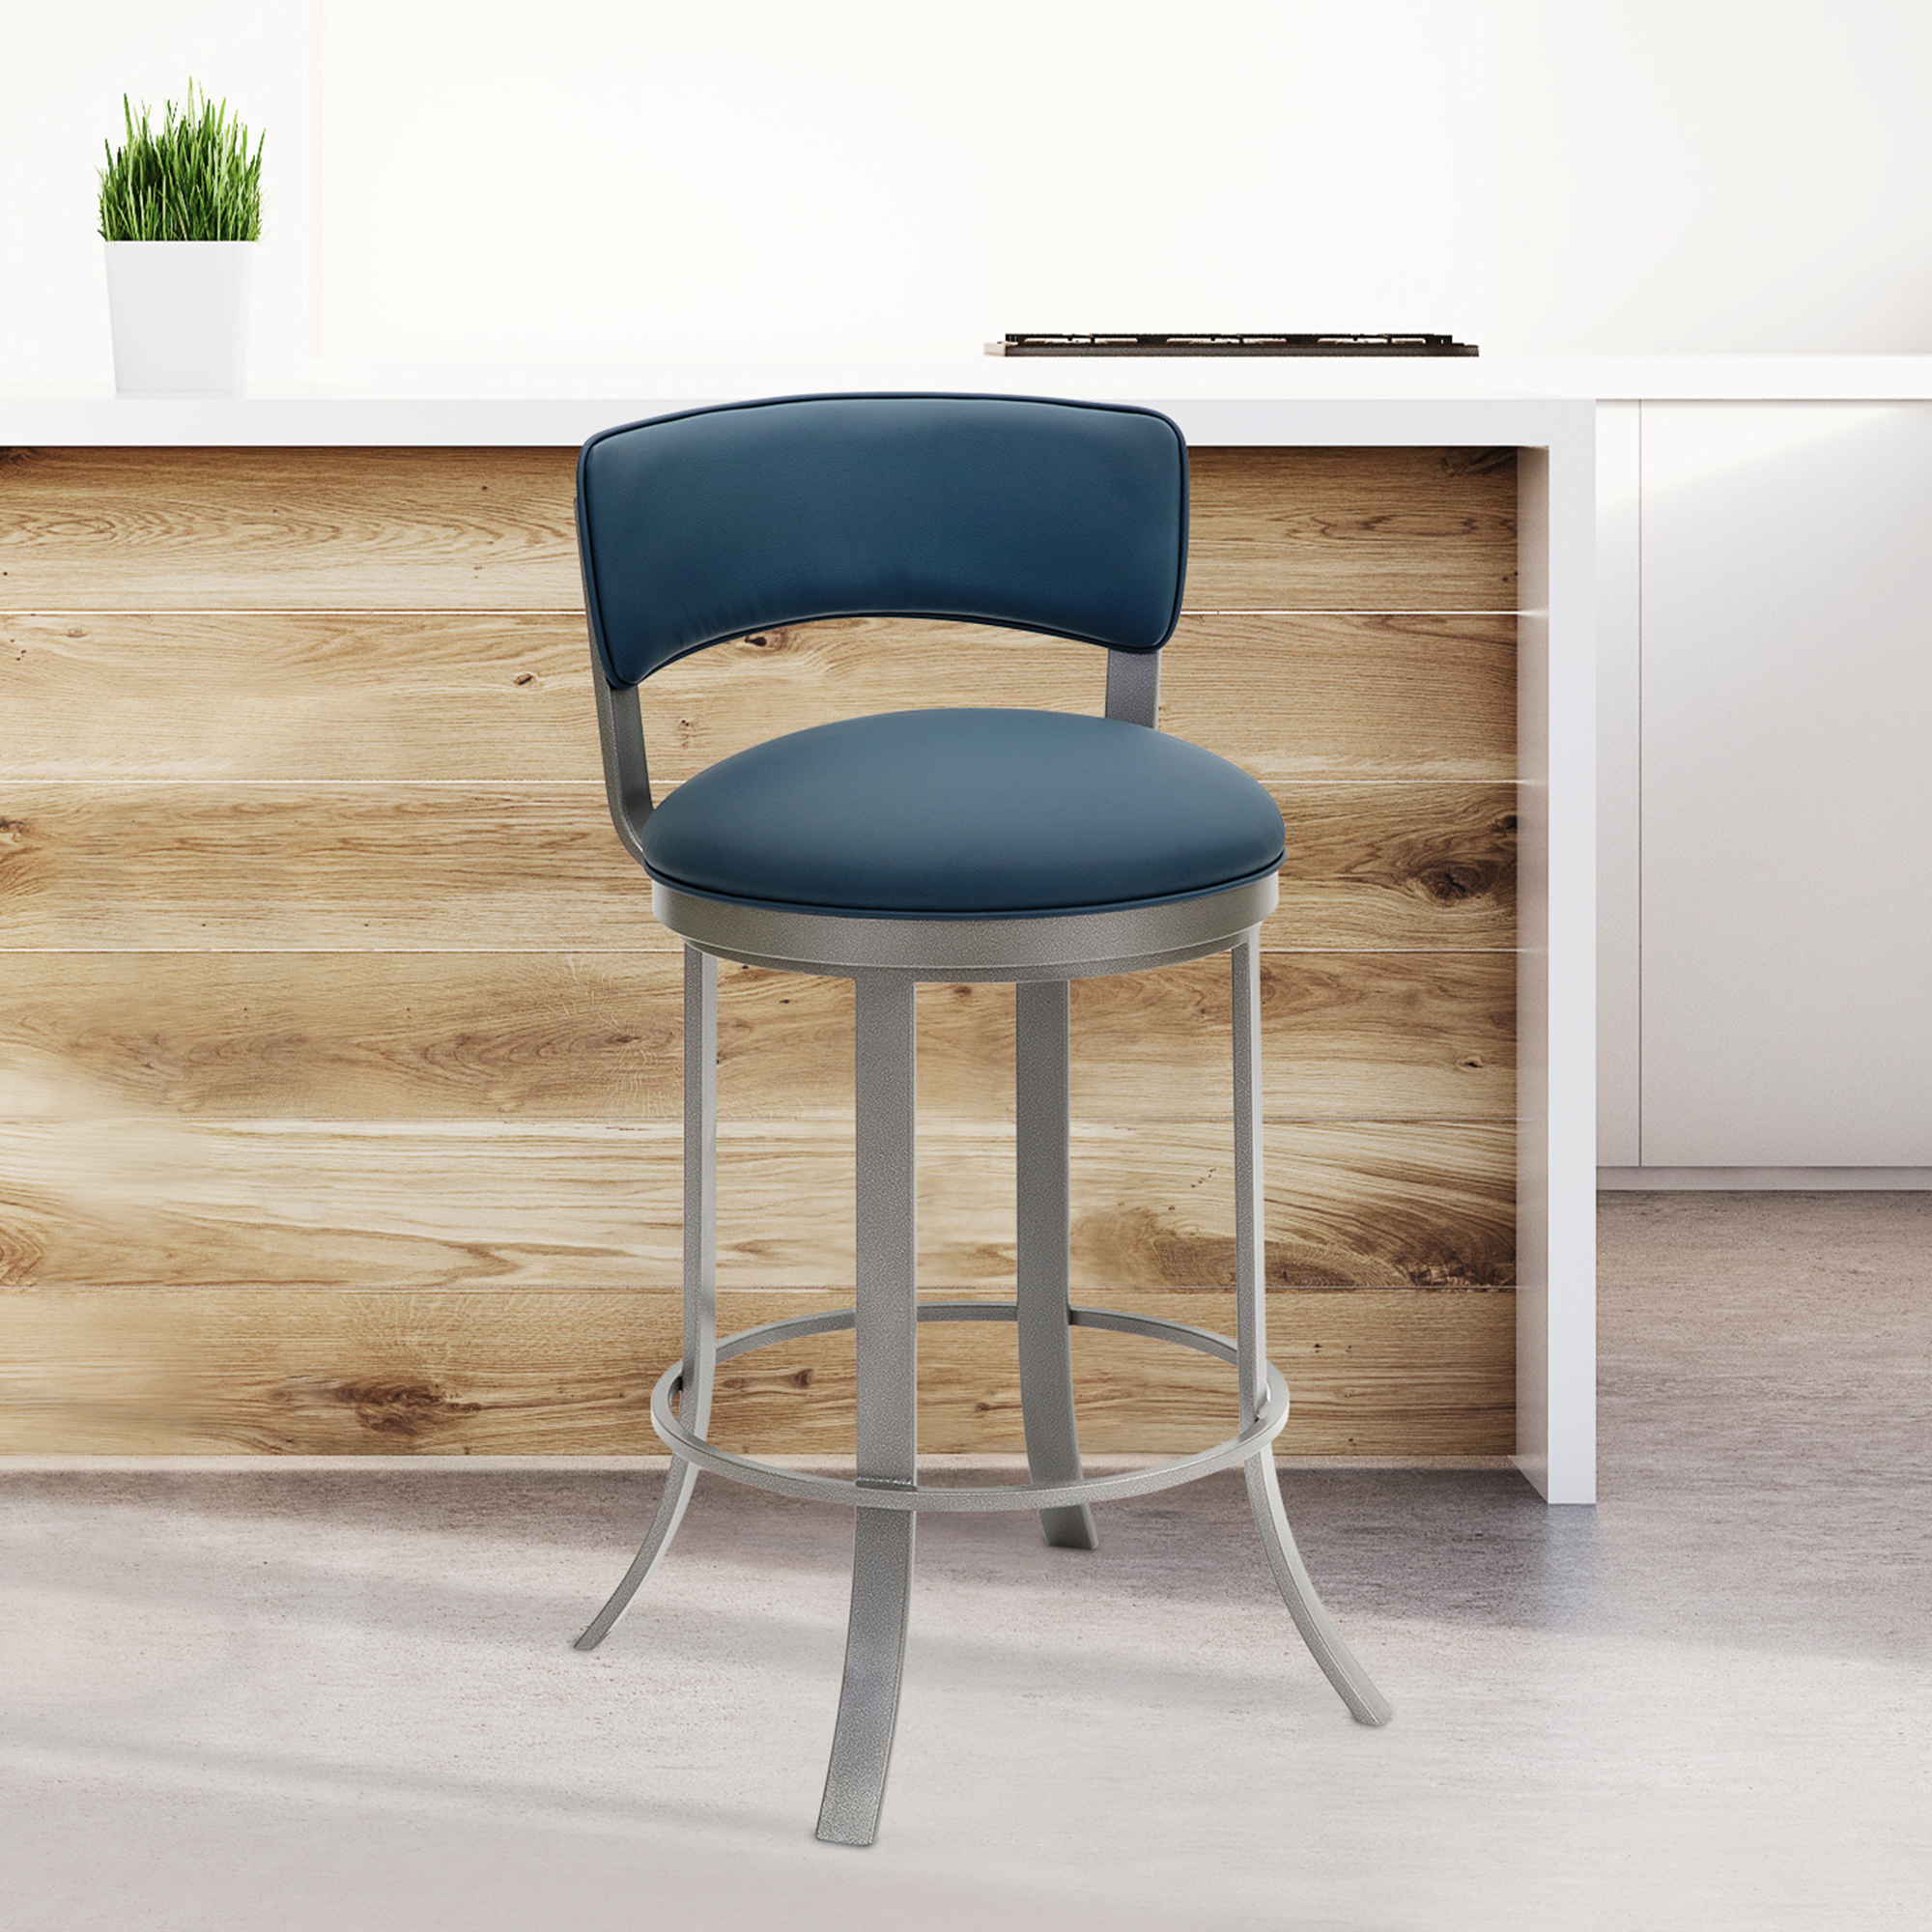 Wondrous Sydney 26 Counter Height Metal Swivel Barstool In Dillon Williamsburg Faux Leather And Silver Palladium Finish By Taylor Gray Home Theyellowbook Wood Chair Design Ideas Theyellowbookinfo